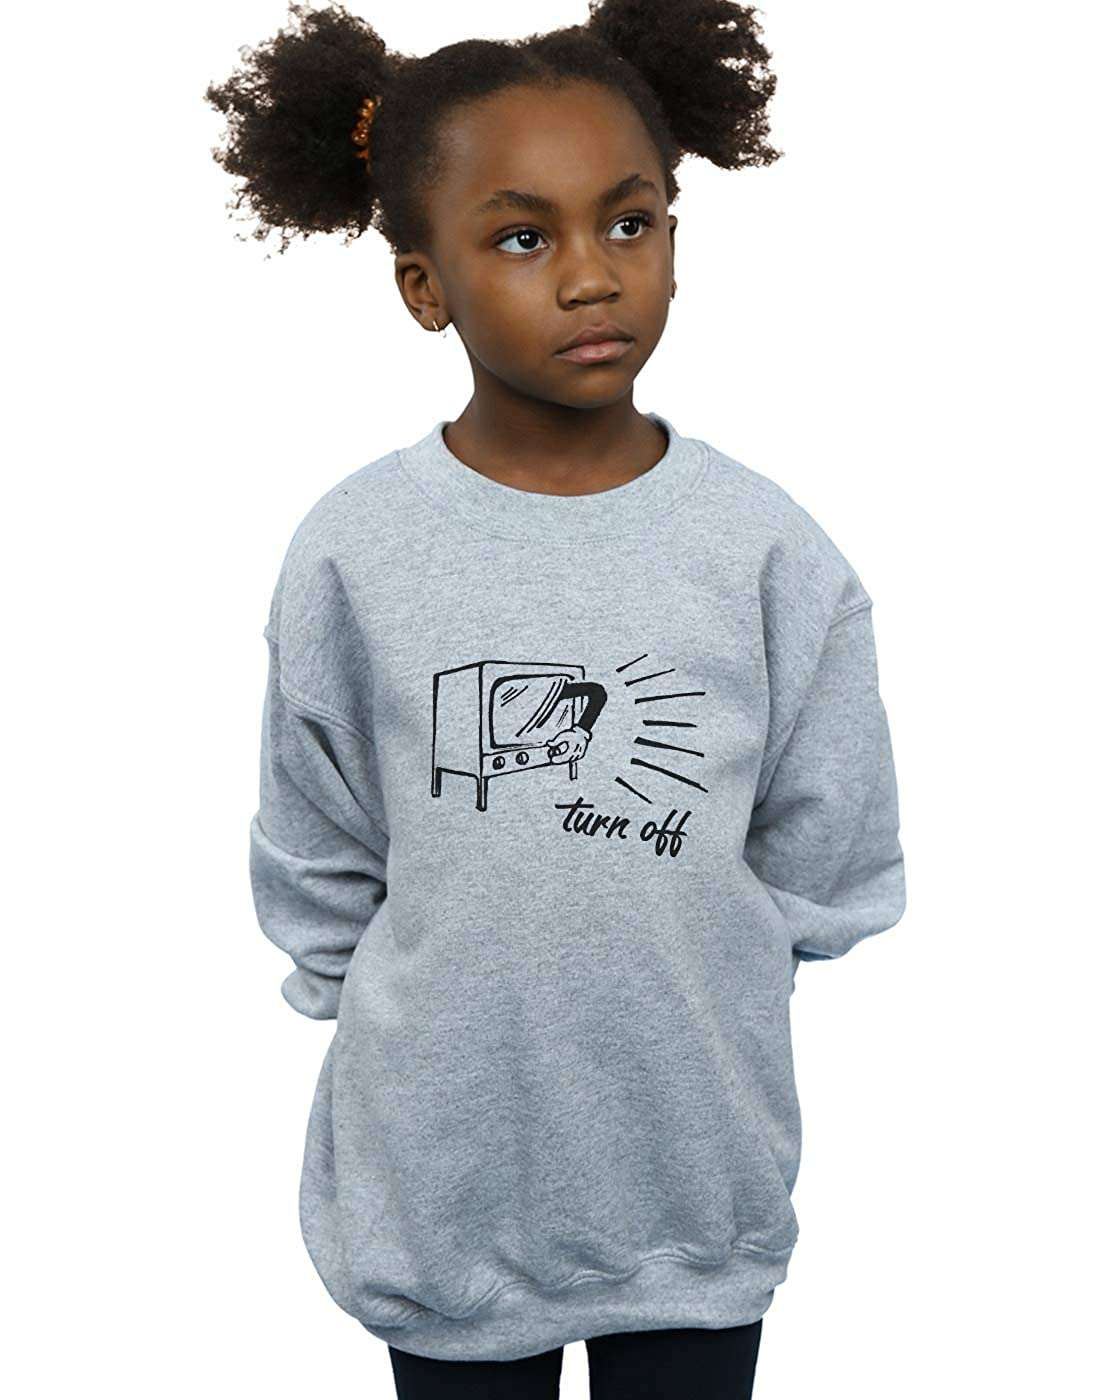 Drewbacca Girls Turn Off Mickey Sweatshirt